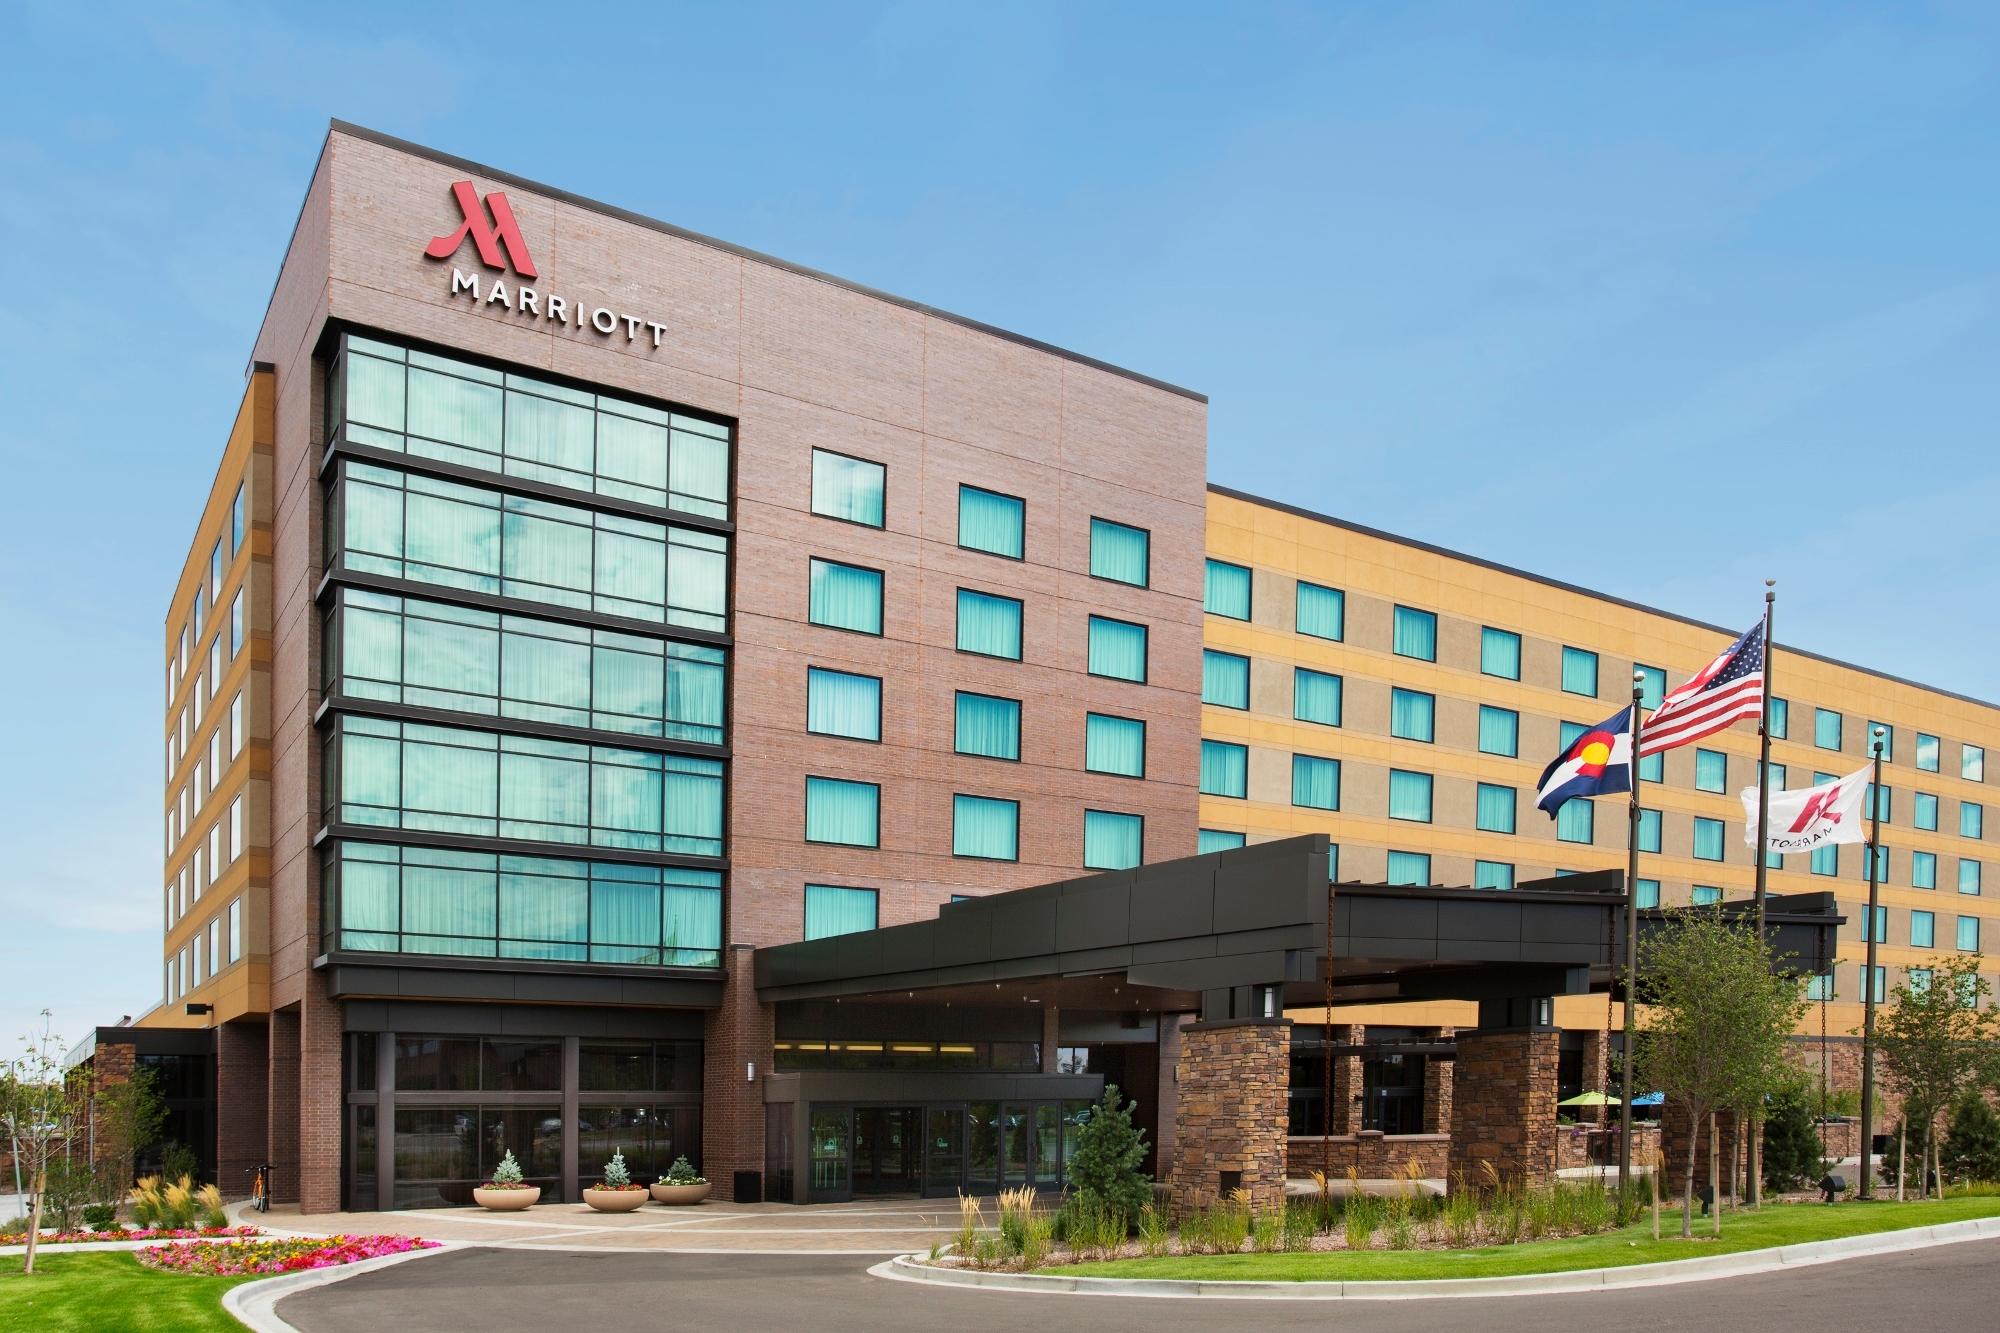 Denver Marriott Westminster image 0